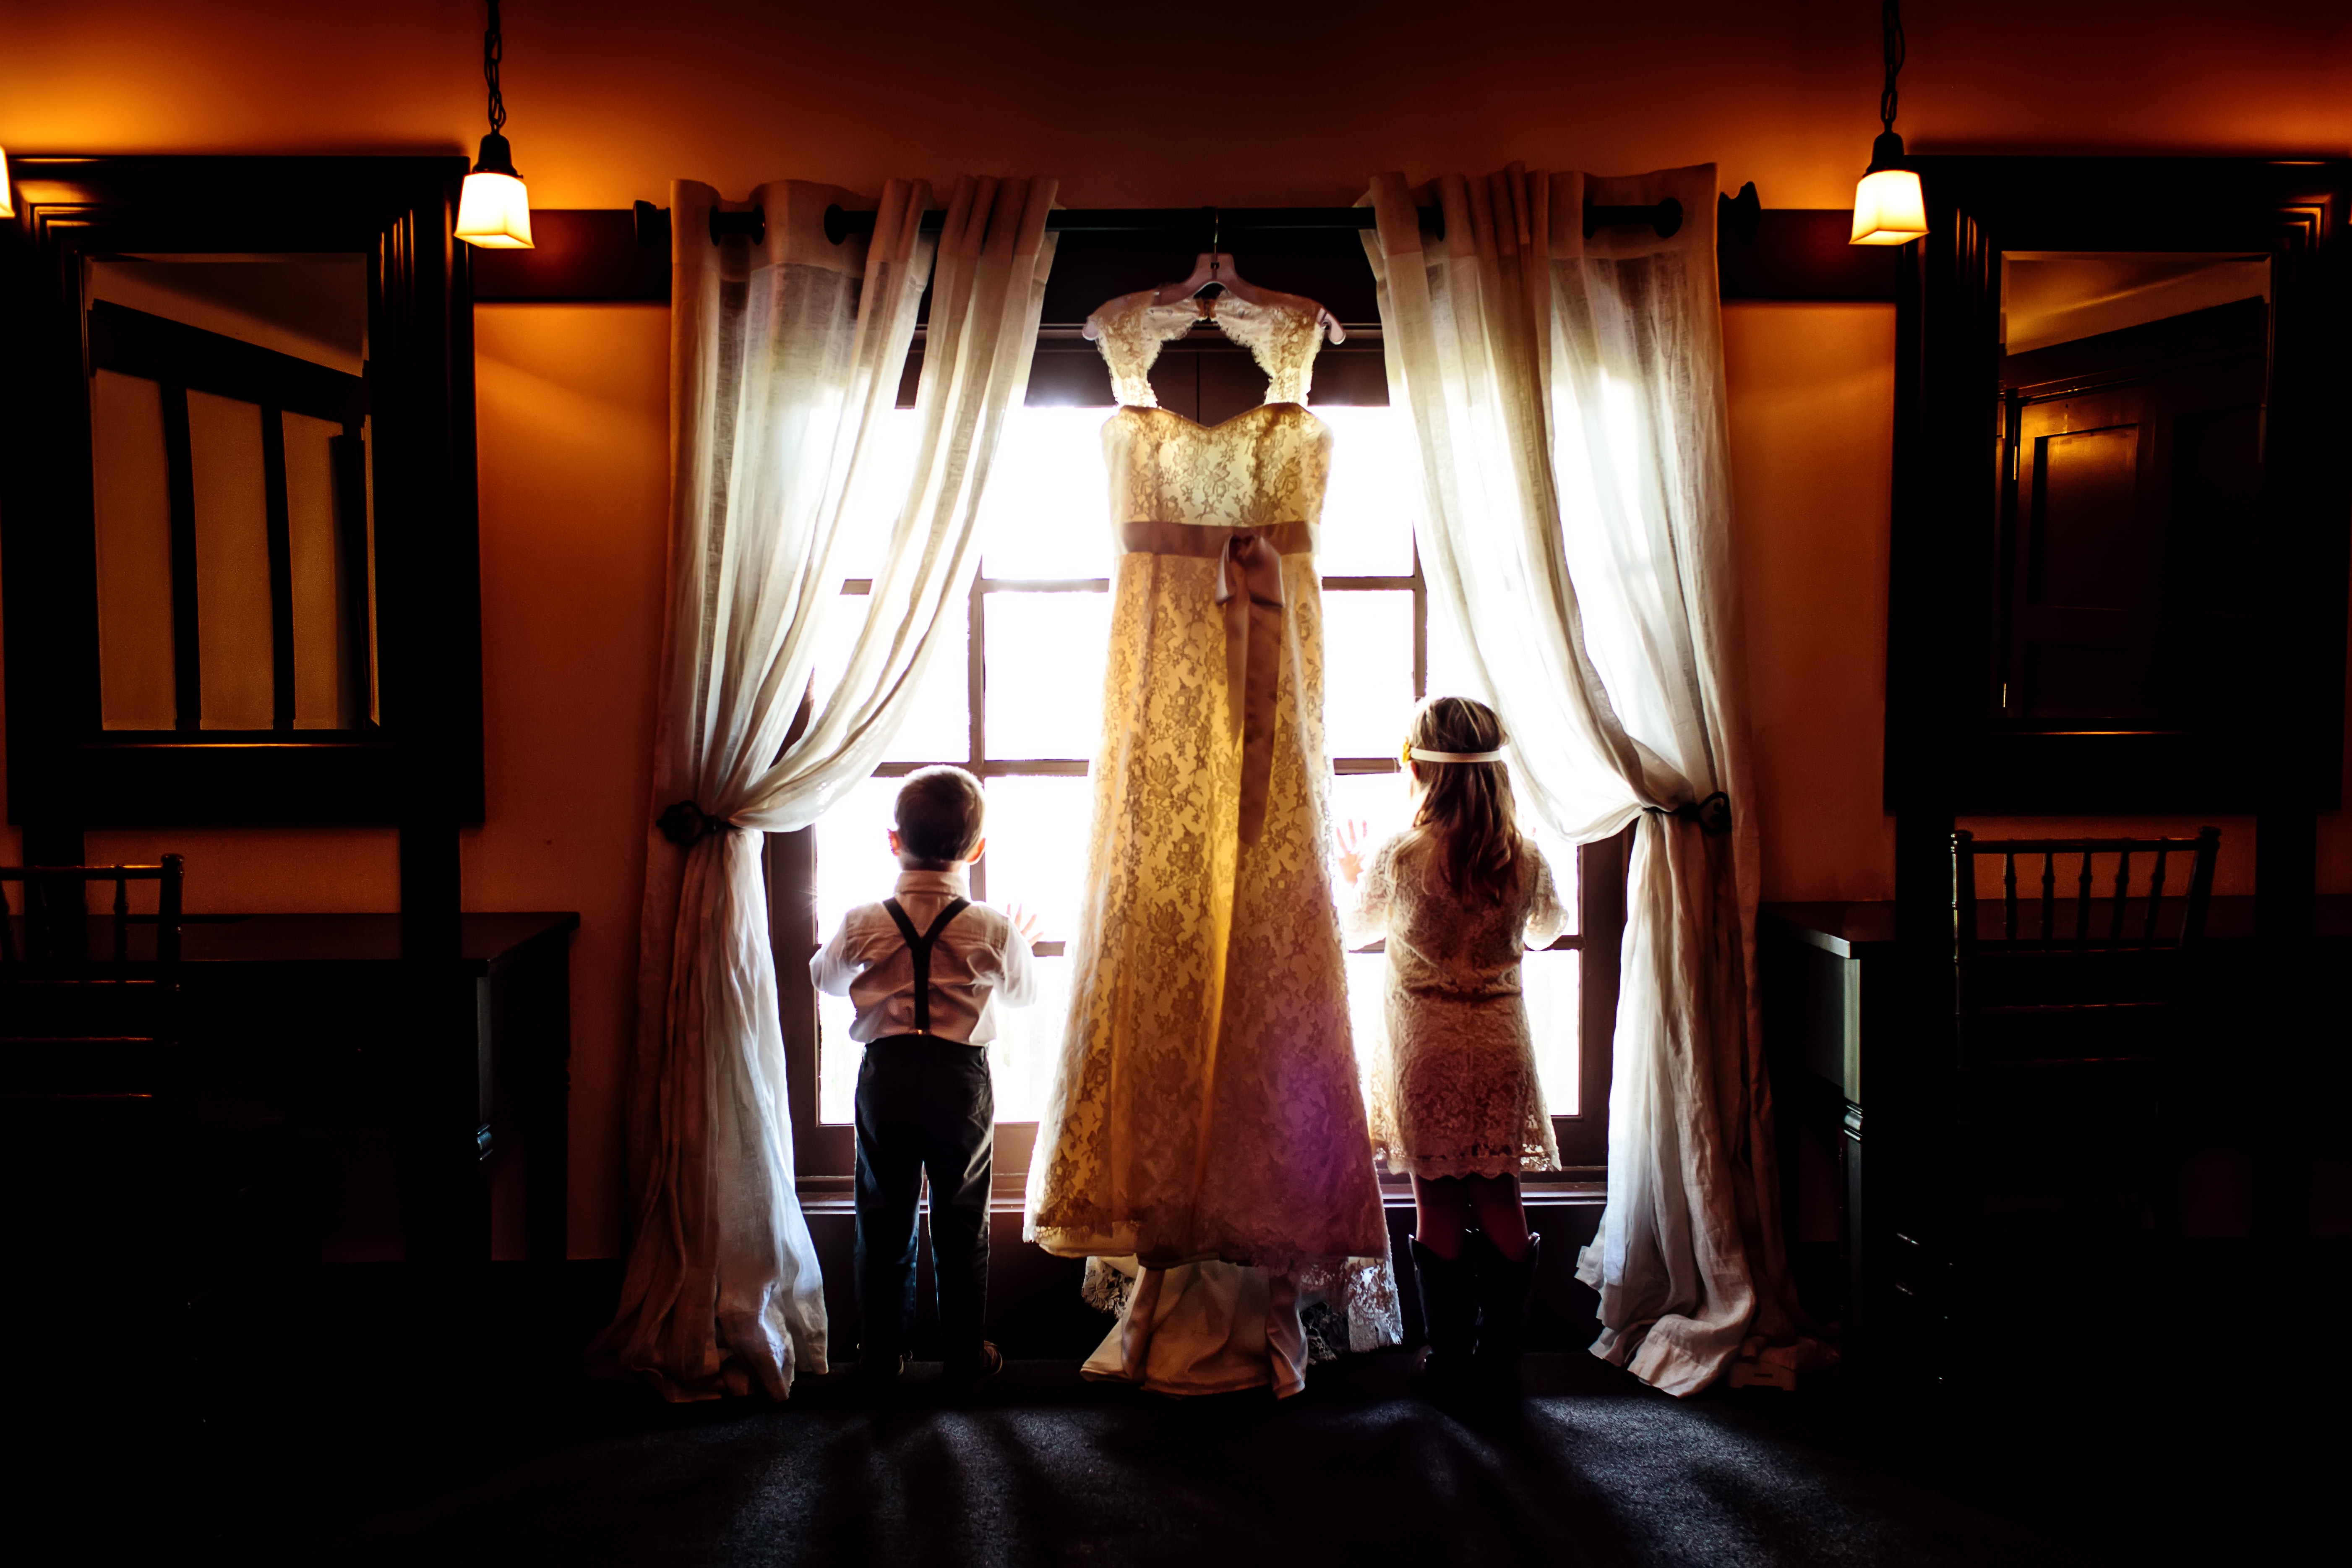 Children and hanging bridal gown at window - photo by Rayan Anastor Photography